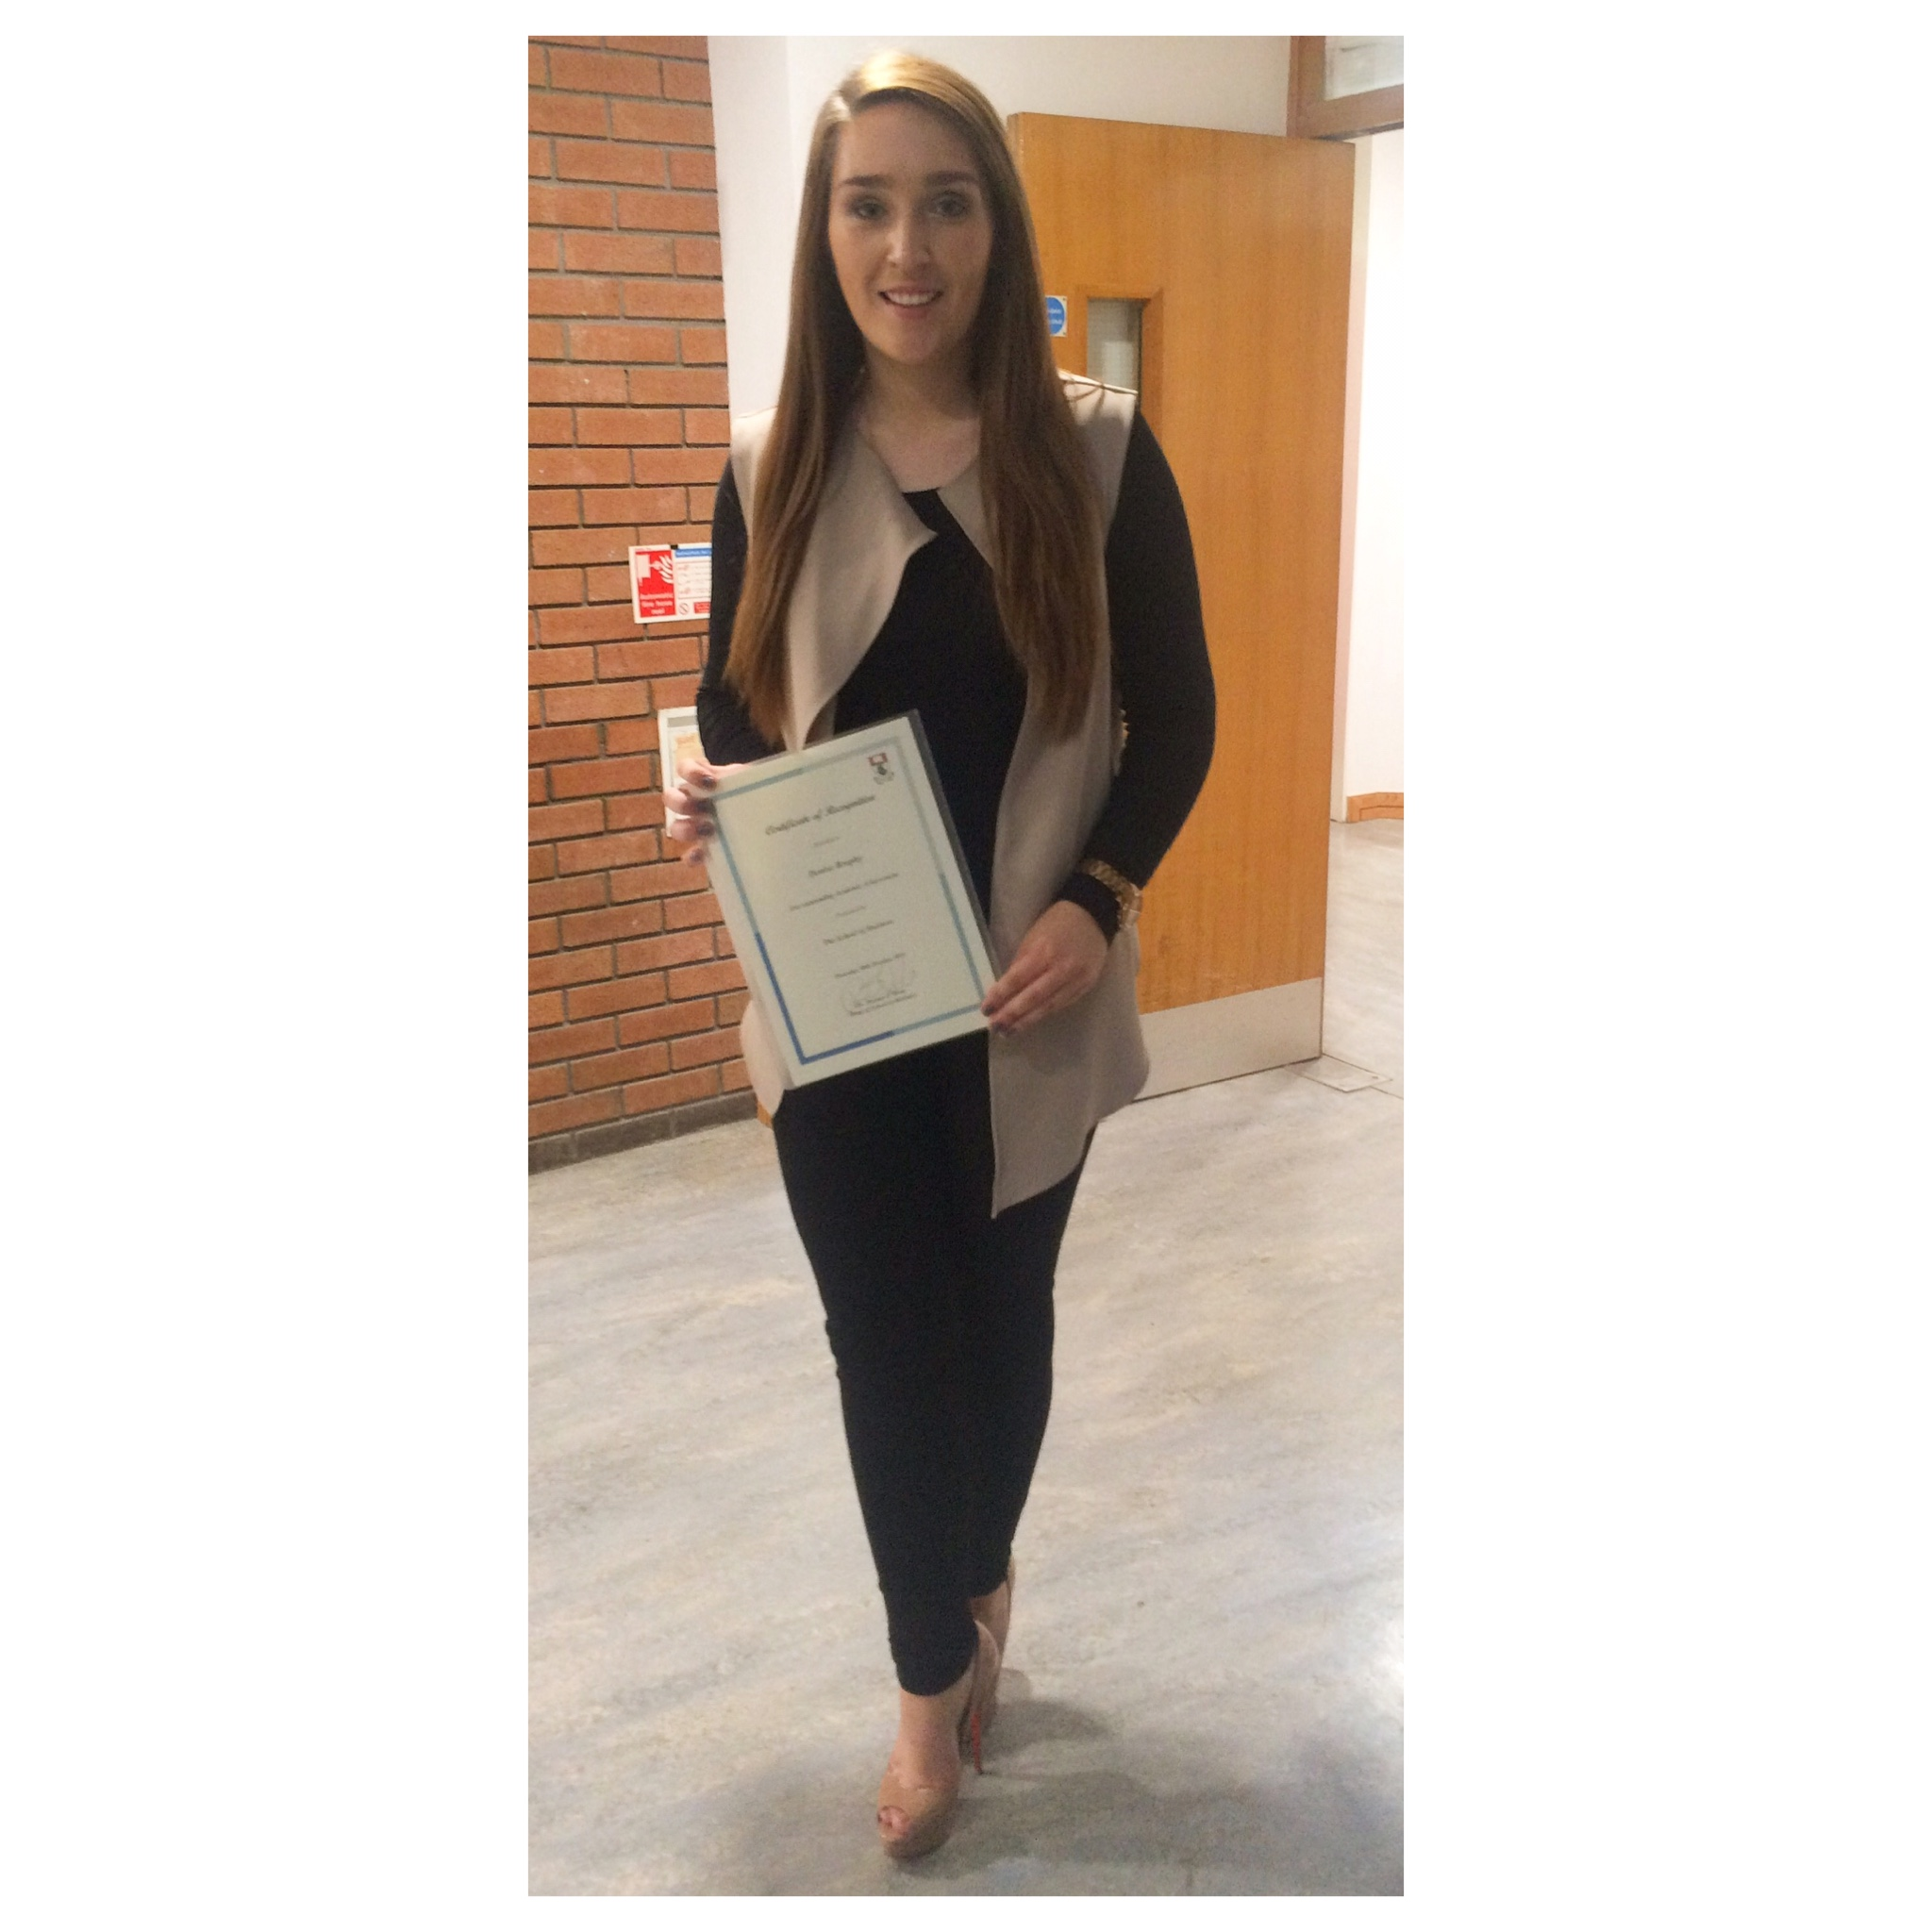 Denise Brophy, Bachelor of Science in Retail Management (WD184)